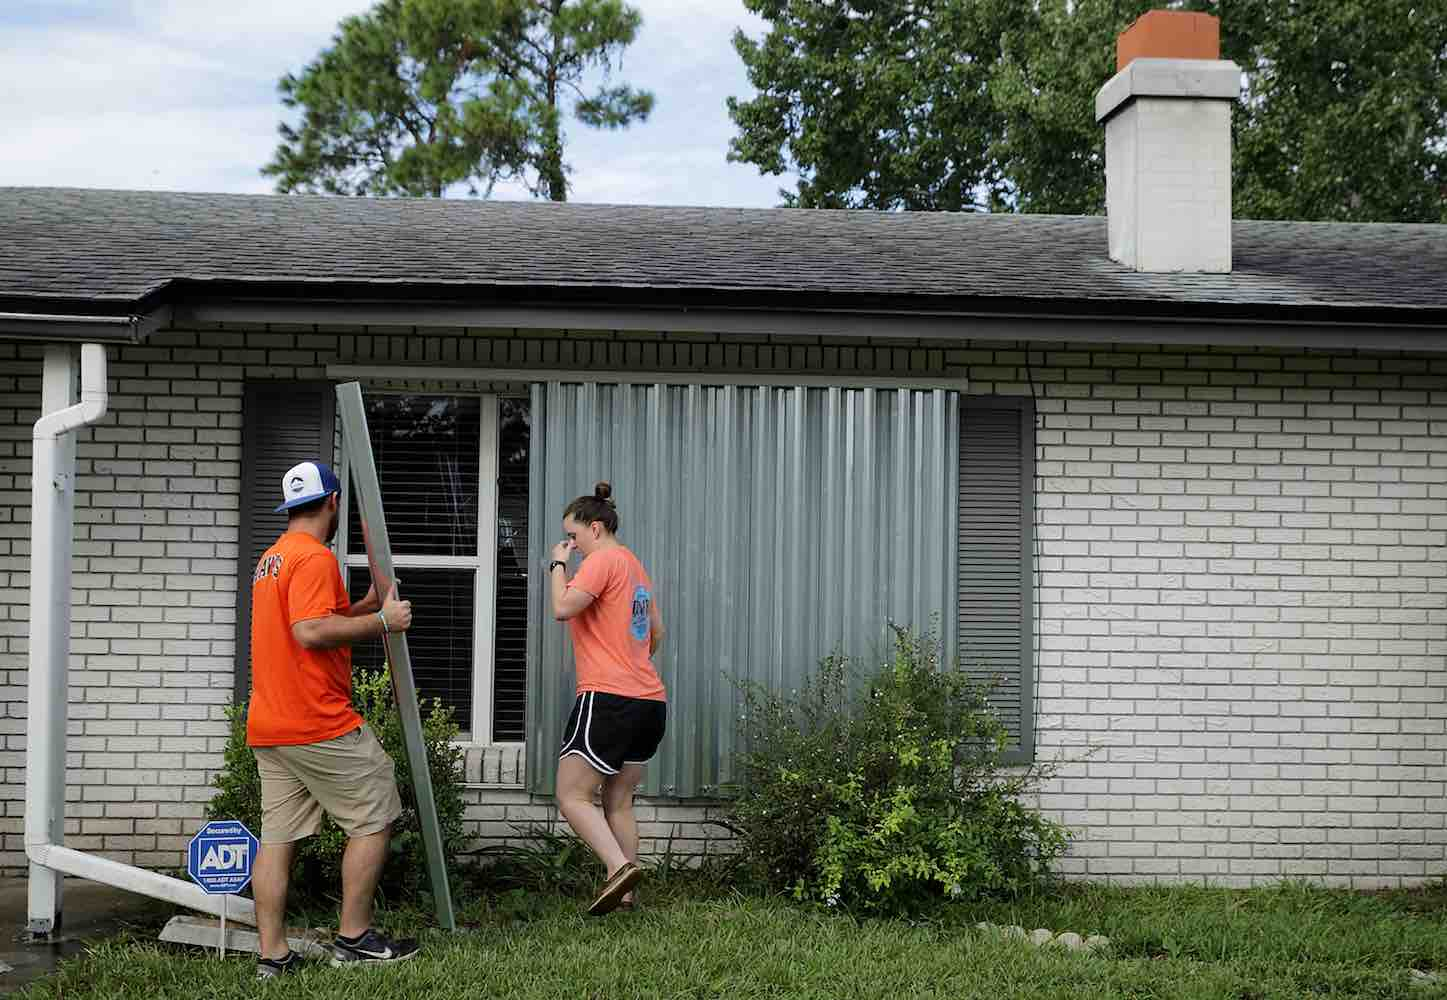 "<div class=""meta image-caption""><div class=""origin-logo origin-image kabc""><span>kabc</span></div><span class=""caption-text"">Caleb Rich and his wife Rachel Rich put metal shutters over windows on their home ahead of the arrival of Hurricane Irma September 9, 2017 in Daytona Beach, Florida.  (Chip Somodevilla/Getty)</span></div>"